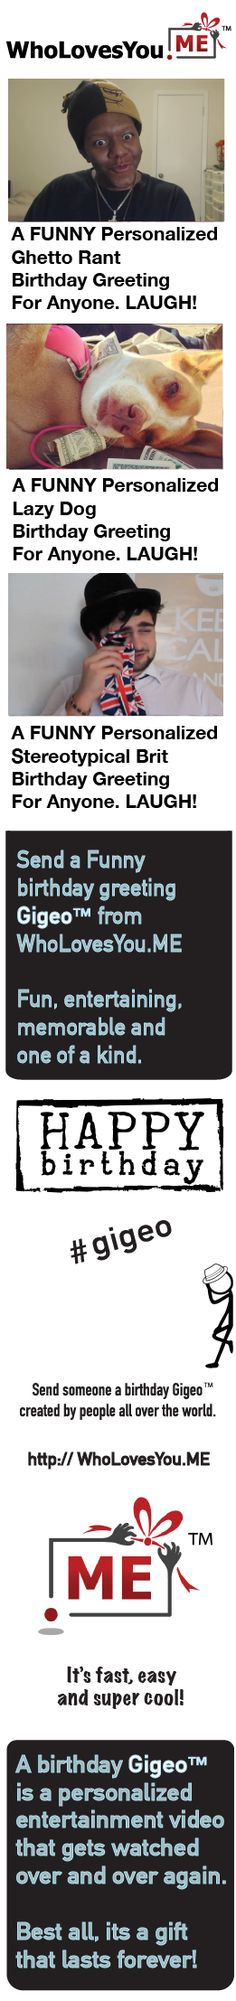 Send someone a funny personalized birthday Gigeo created by people all around the world. A great gift that will be watched over and over again! Uncommon, memorable and timeless. #birthdaygreetings | http://WhoLovesYou.ME